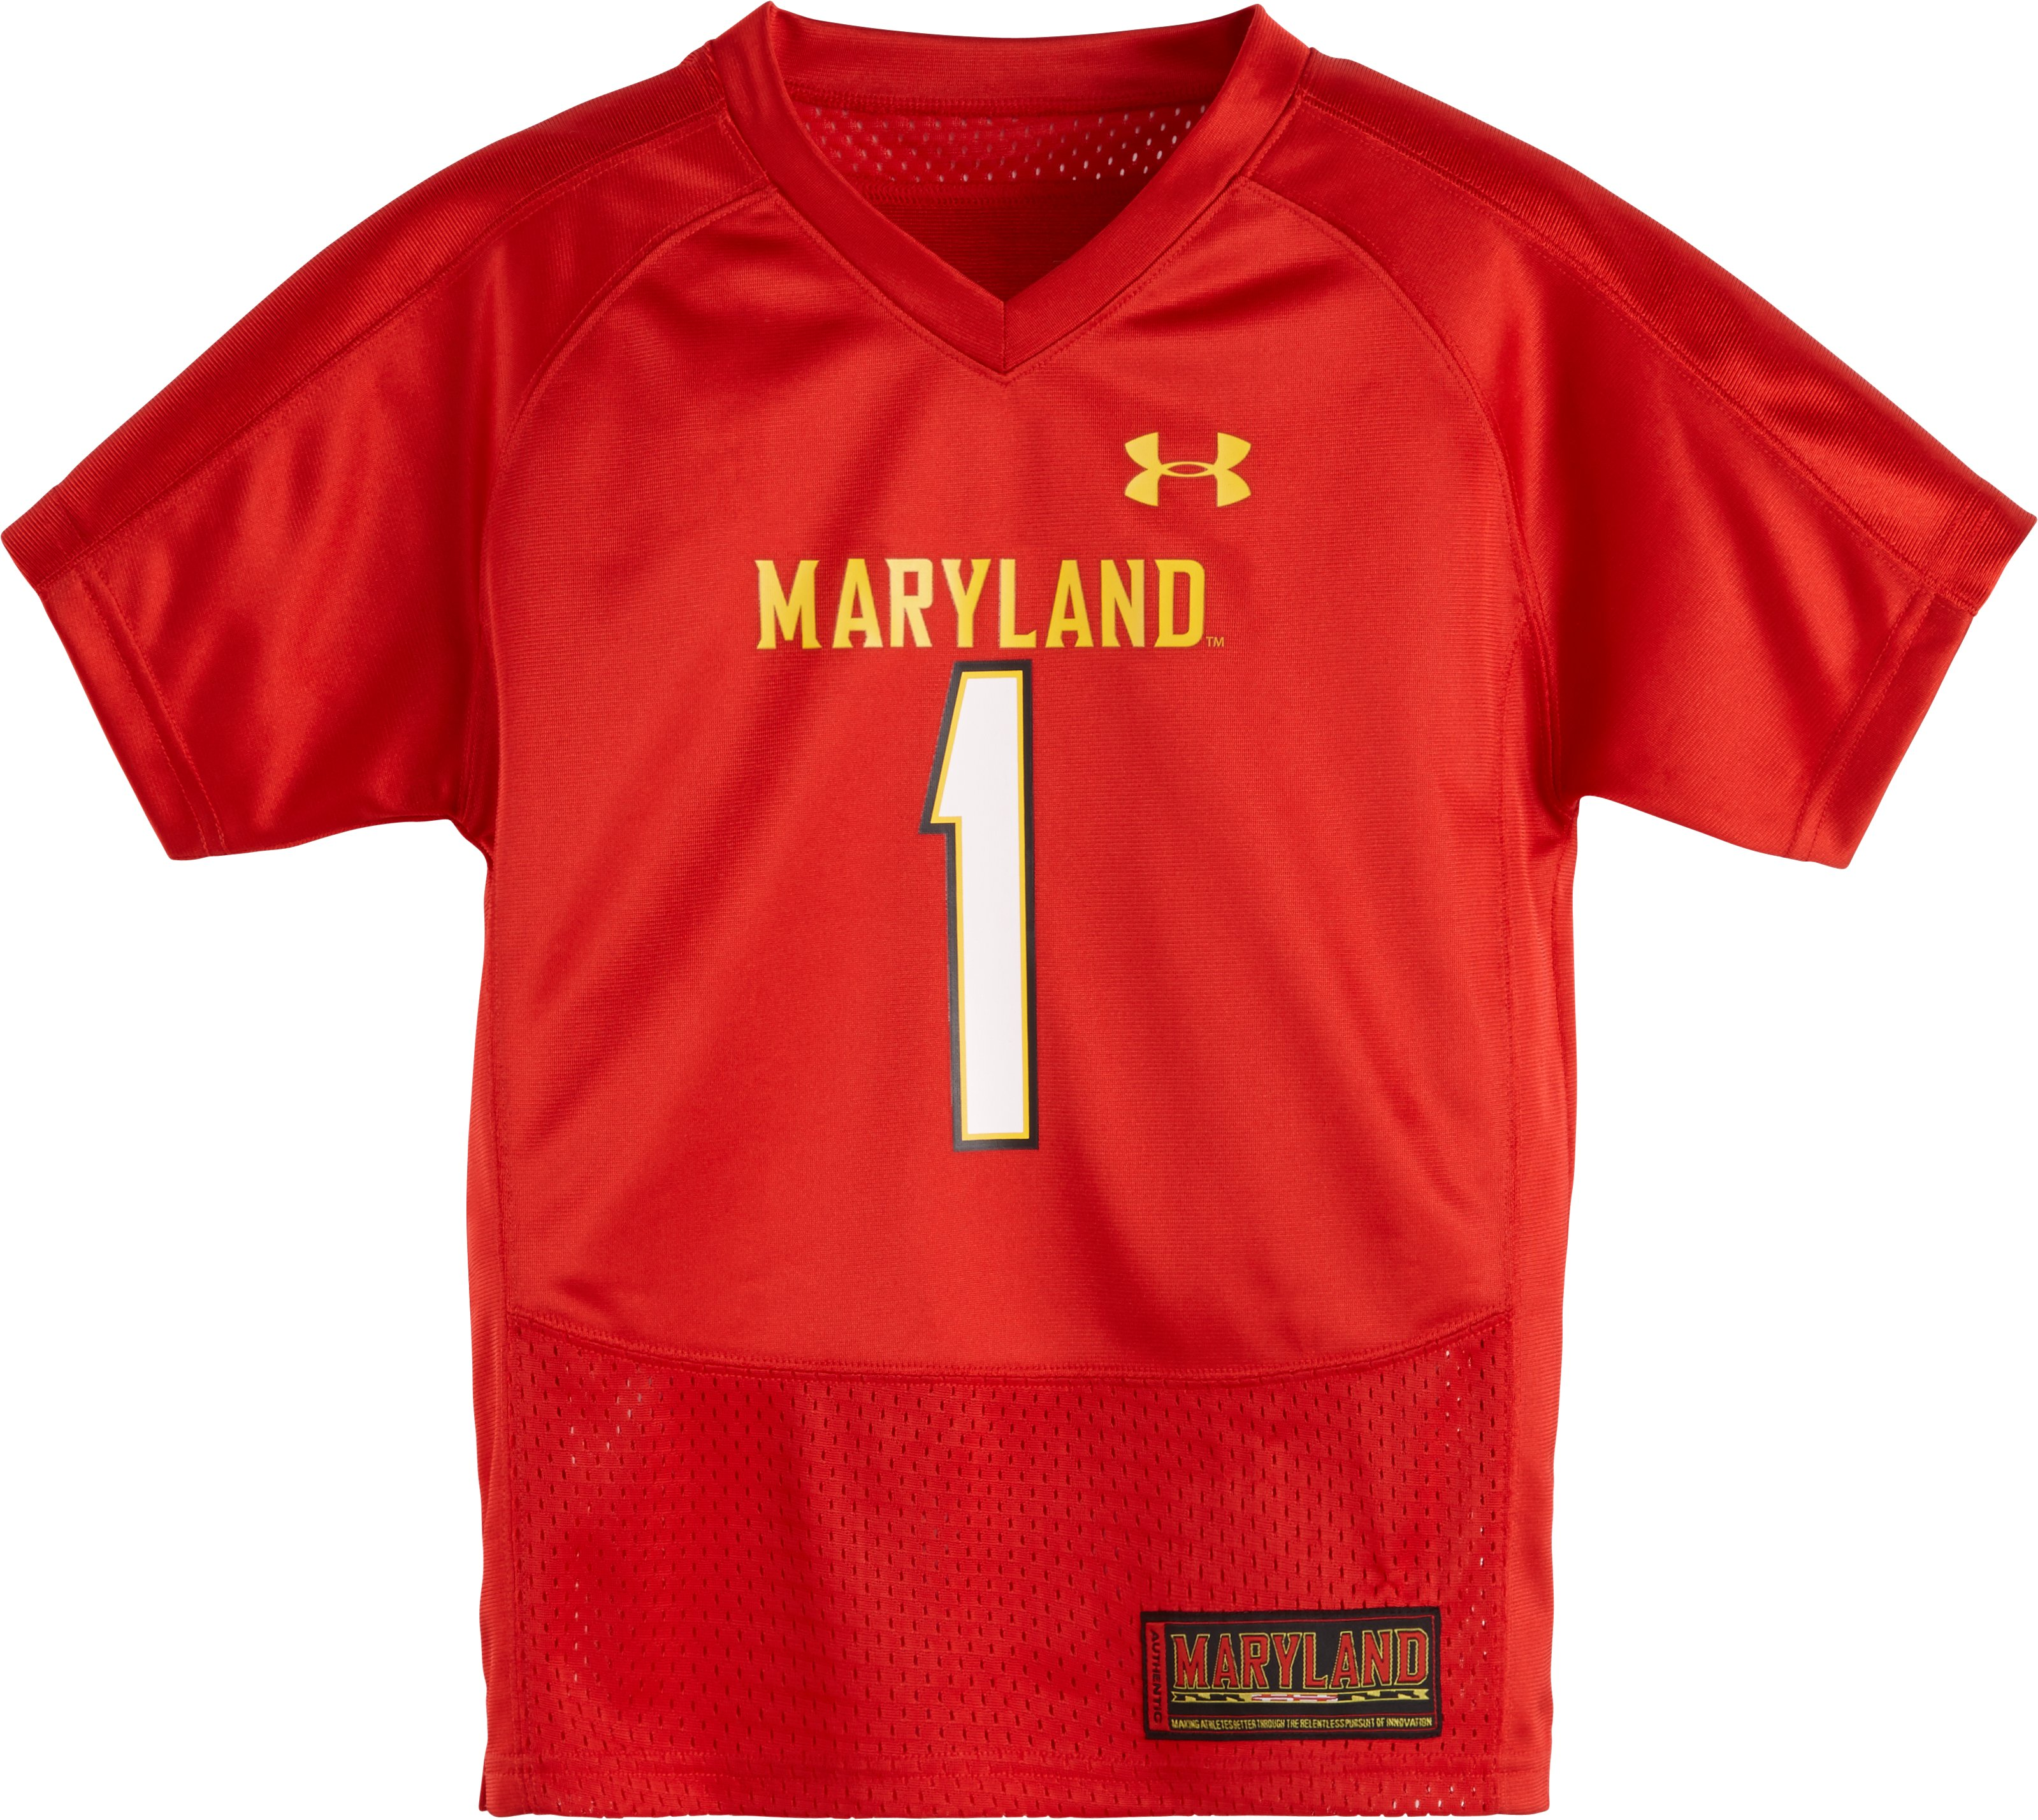 Boys' Toddler Maryland Replica Jersey, Red